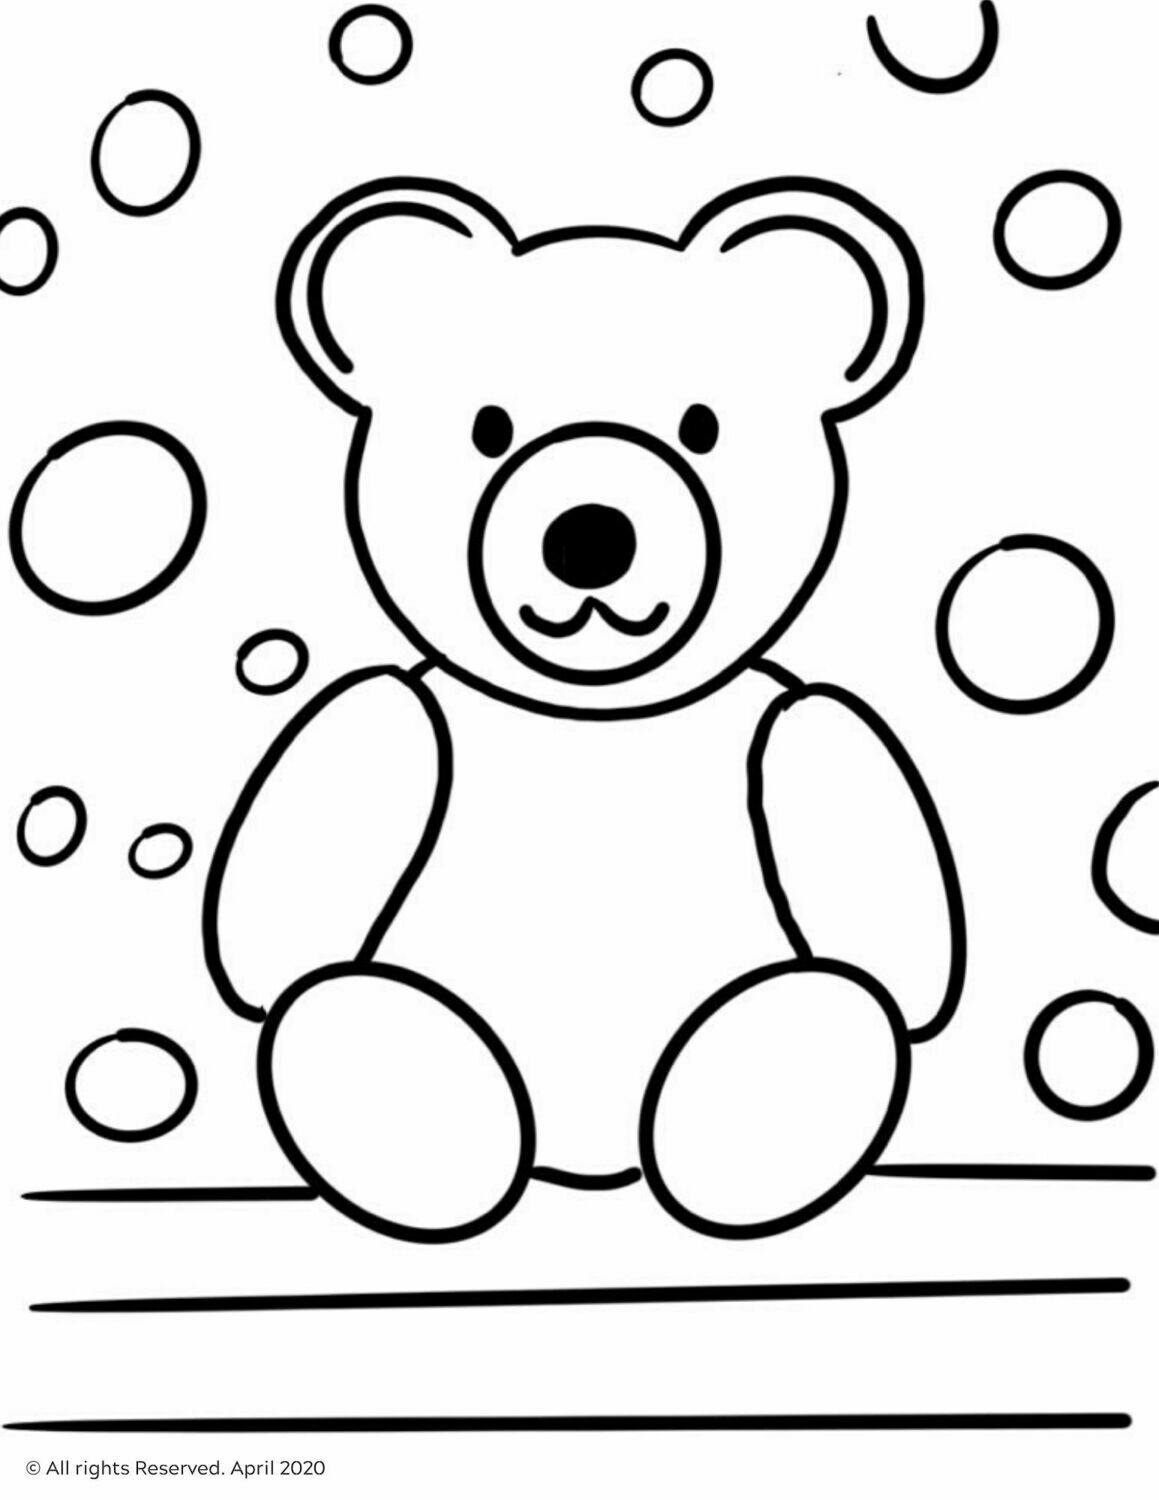 FREE Download & Print Teddy Bear Coloring Page